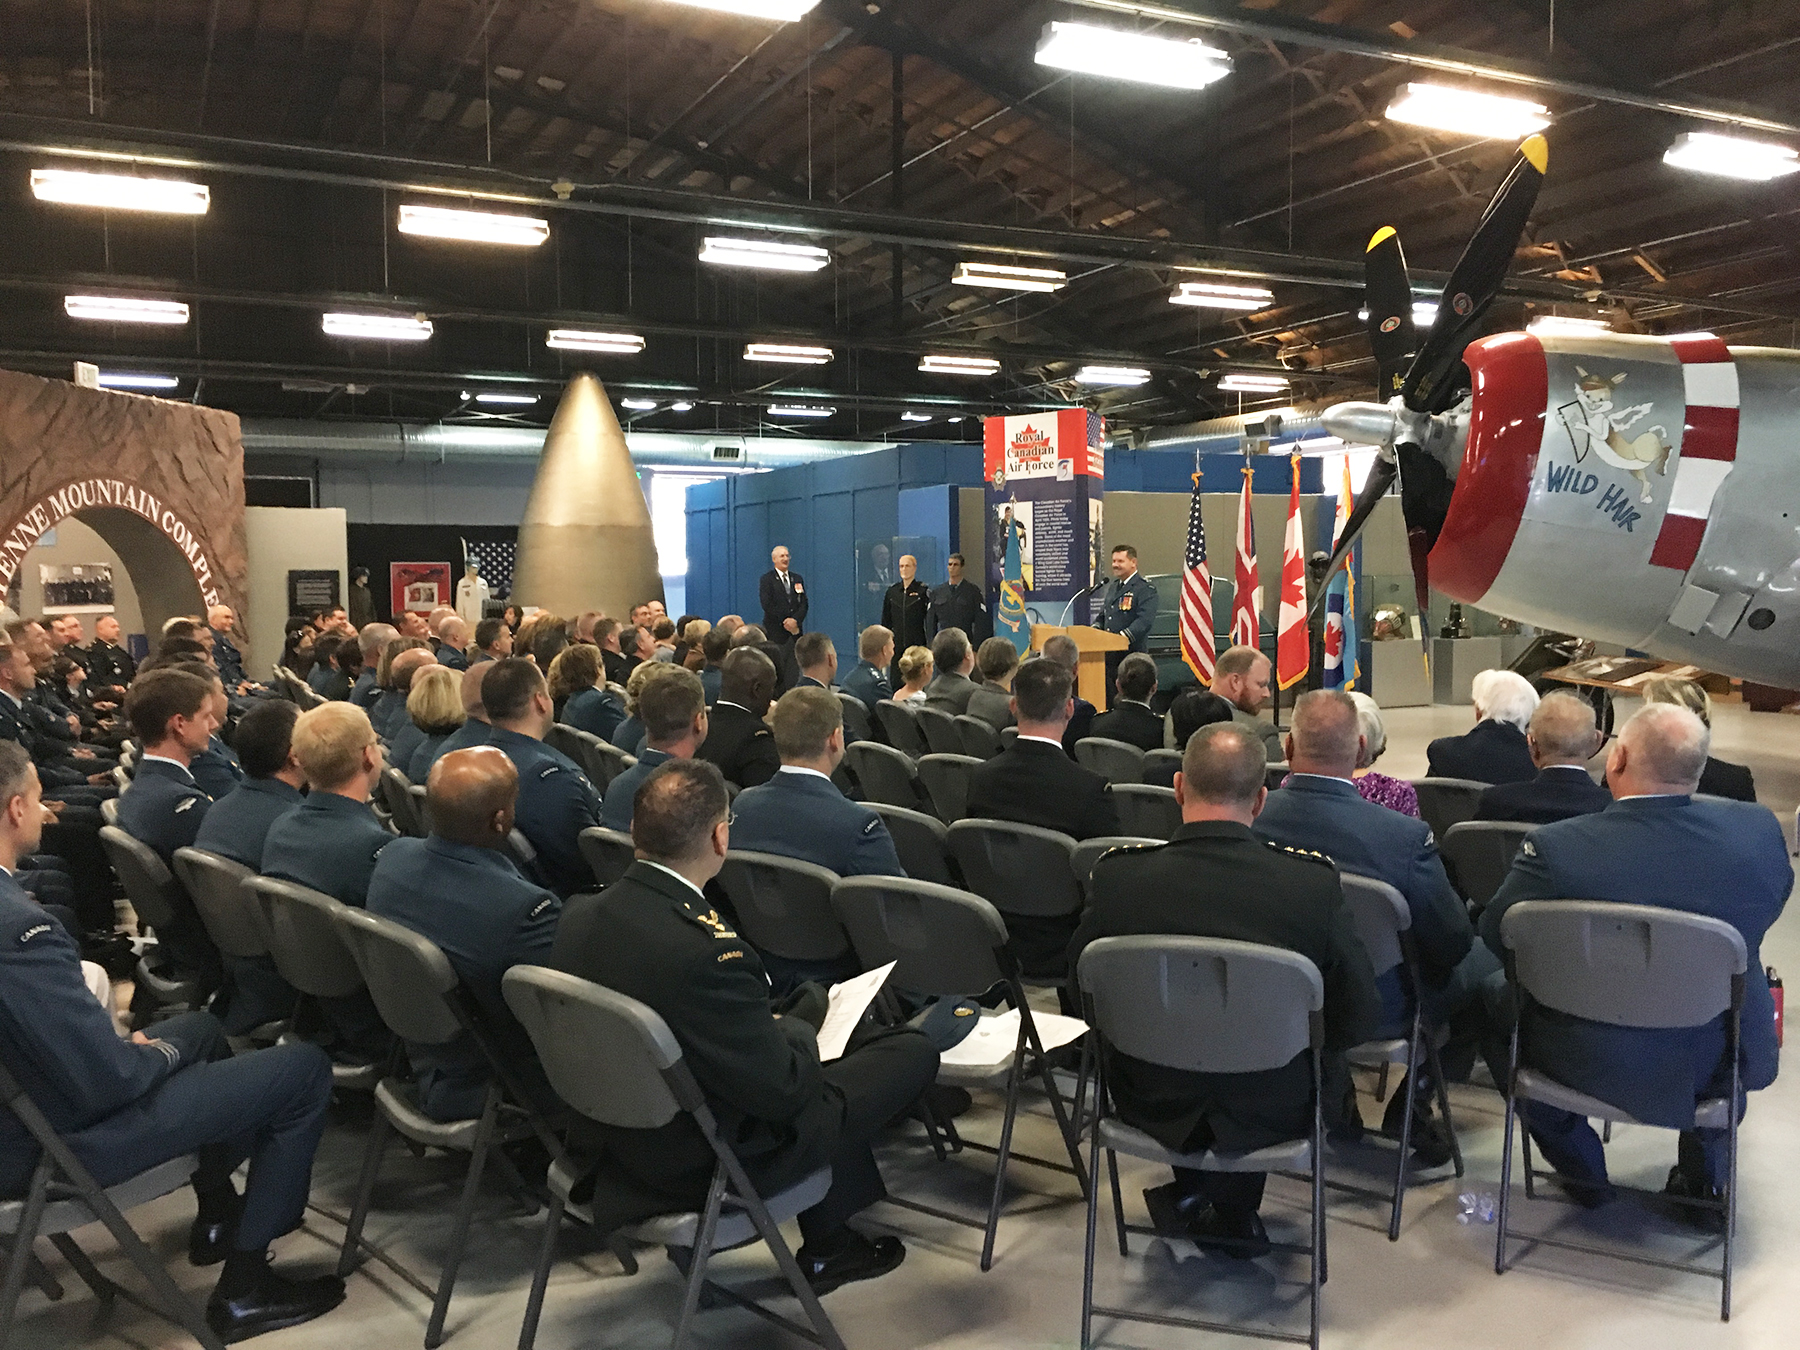 "Lieutenant-General Pierre St-Amand, Deputy Commander North American Aerospace Defense Command (NORAD), addresses military members and their families during a September 18, 2016, ceremony held at the Peterson Air Force Base Museum in Colorado Springs, Colorado, to mark the 76th anniversary of the Battle of Britain. NORAD personnel from Canada and the United States, and military personnel from the United Kingdom, paid their respects. Squadron Leader (retired) George Sweanor, a Canadian who served in Great Britain with the Royal Canadian Air Force's 419 ""Moose"" Squadron in Bomber Command, also attended. Mr. Sweanor was a prisoner of war for 800 days in Stalag Luft III in Sagan, Poland, the ""Great Escape"" camp, during the war; after the war, he flew B-29 Superfortress Bombers when he was stationed with a United States Air Force/RCAF detachment in Edmonton, Alberta. PHOTO: Lieutenant(N) Marco Chouinard"